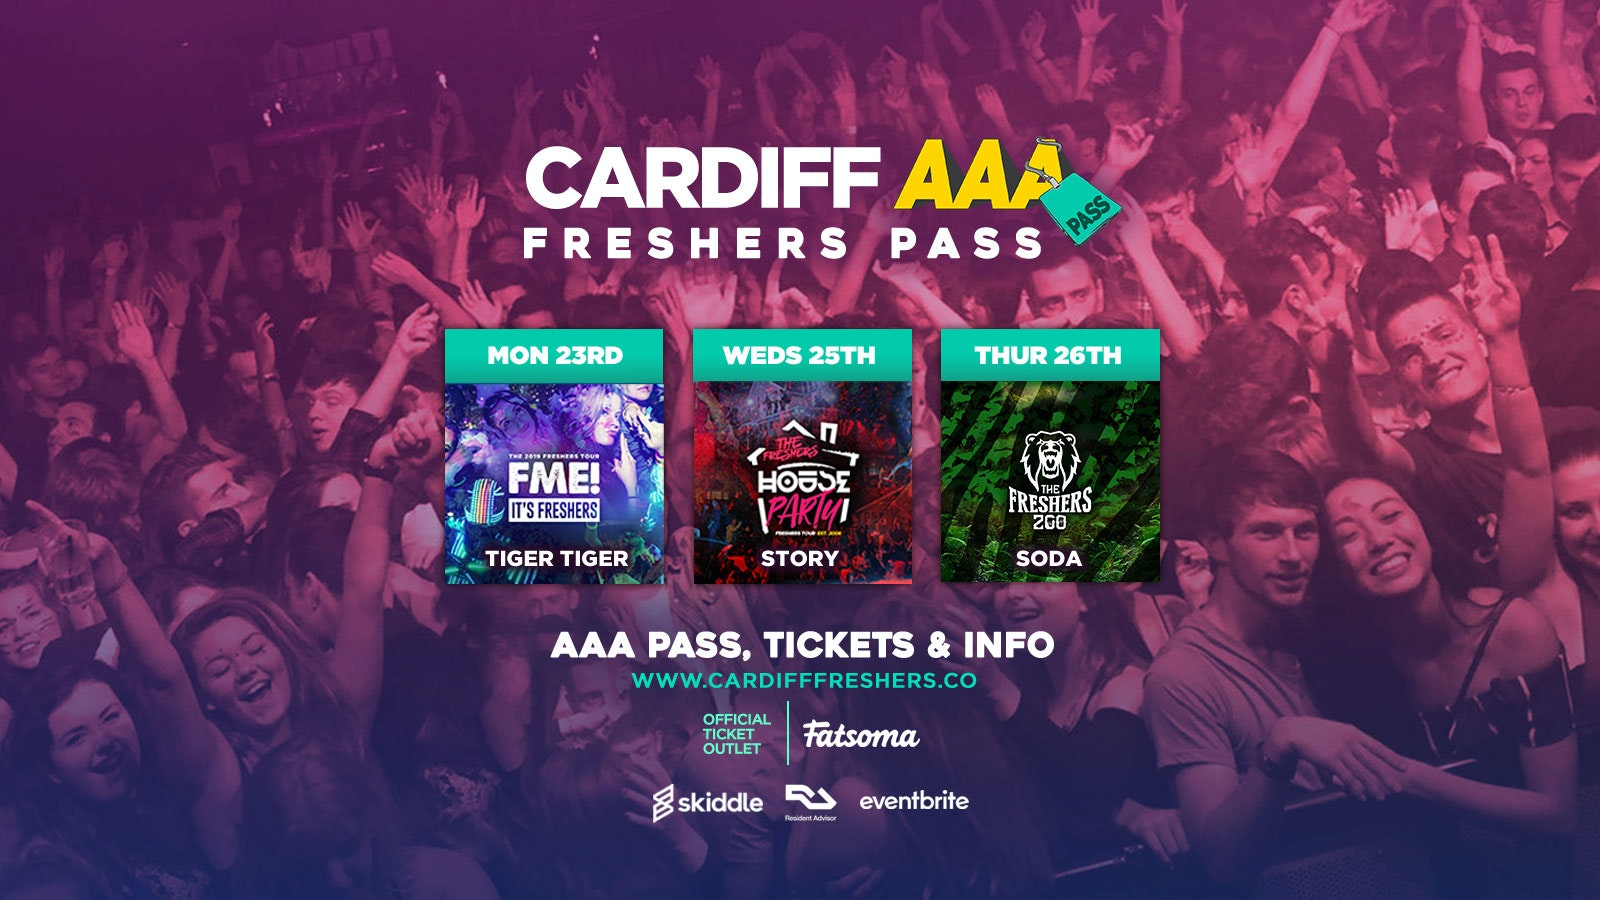 Cardiff AAA Freshers Pass 2019 | 3 Events, 1 Pass /// Cardiff Freshers 2019